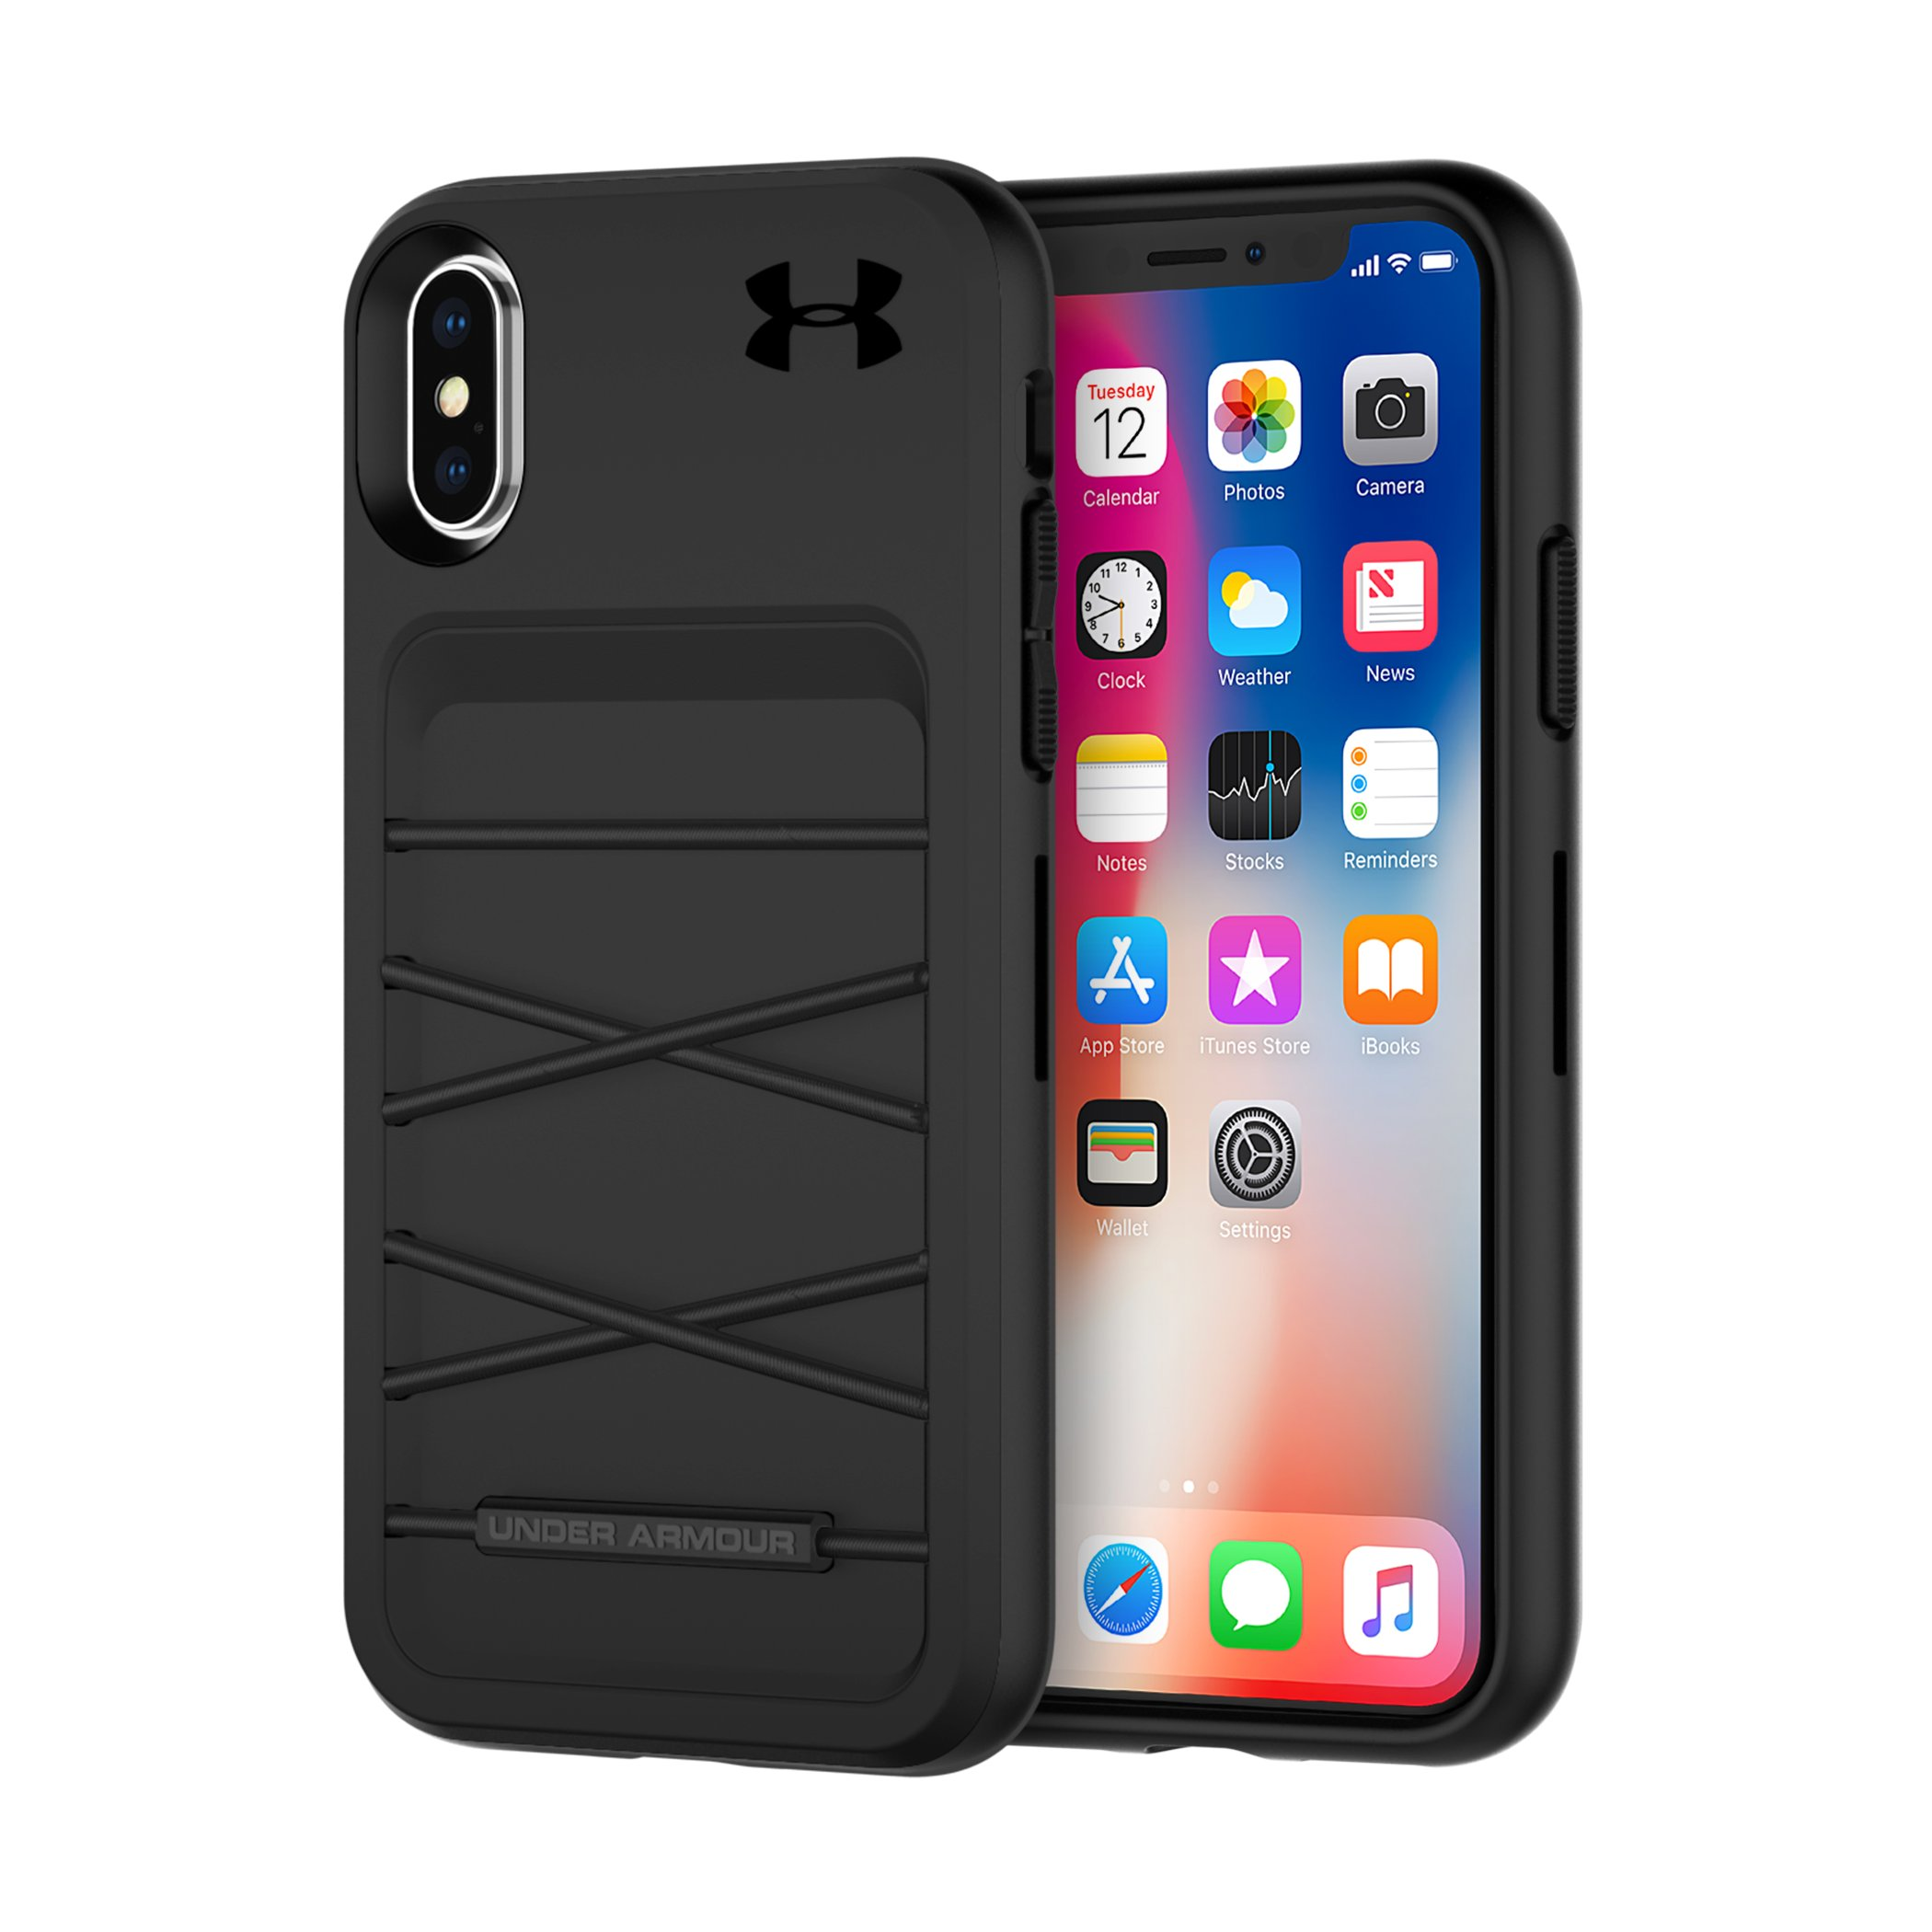 UA Protect Arsenal Case for iPhone X 2 Colors $39.99